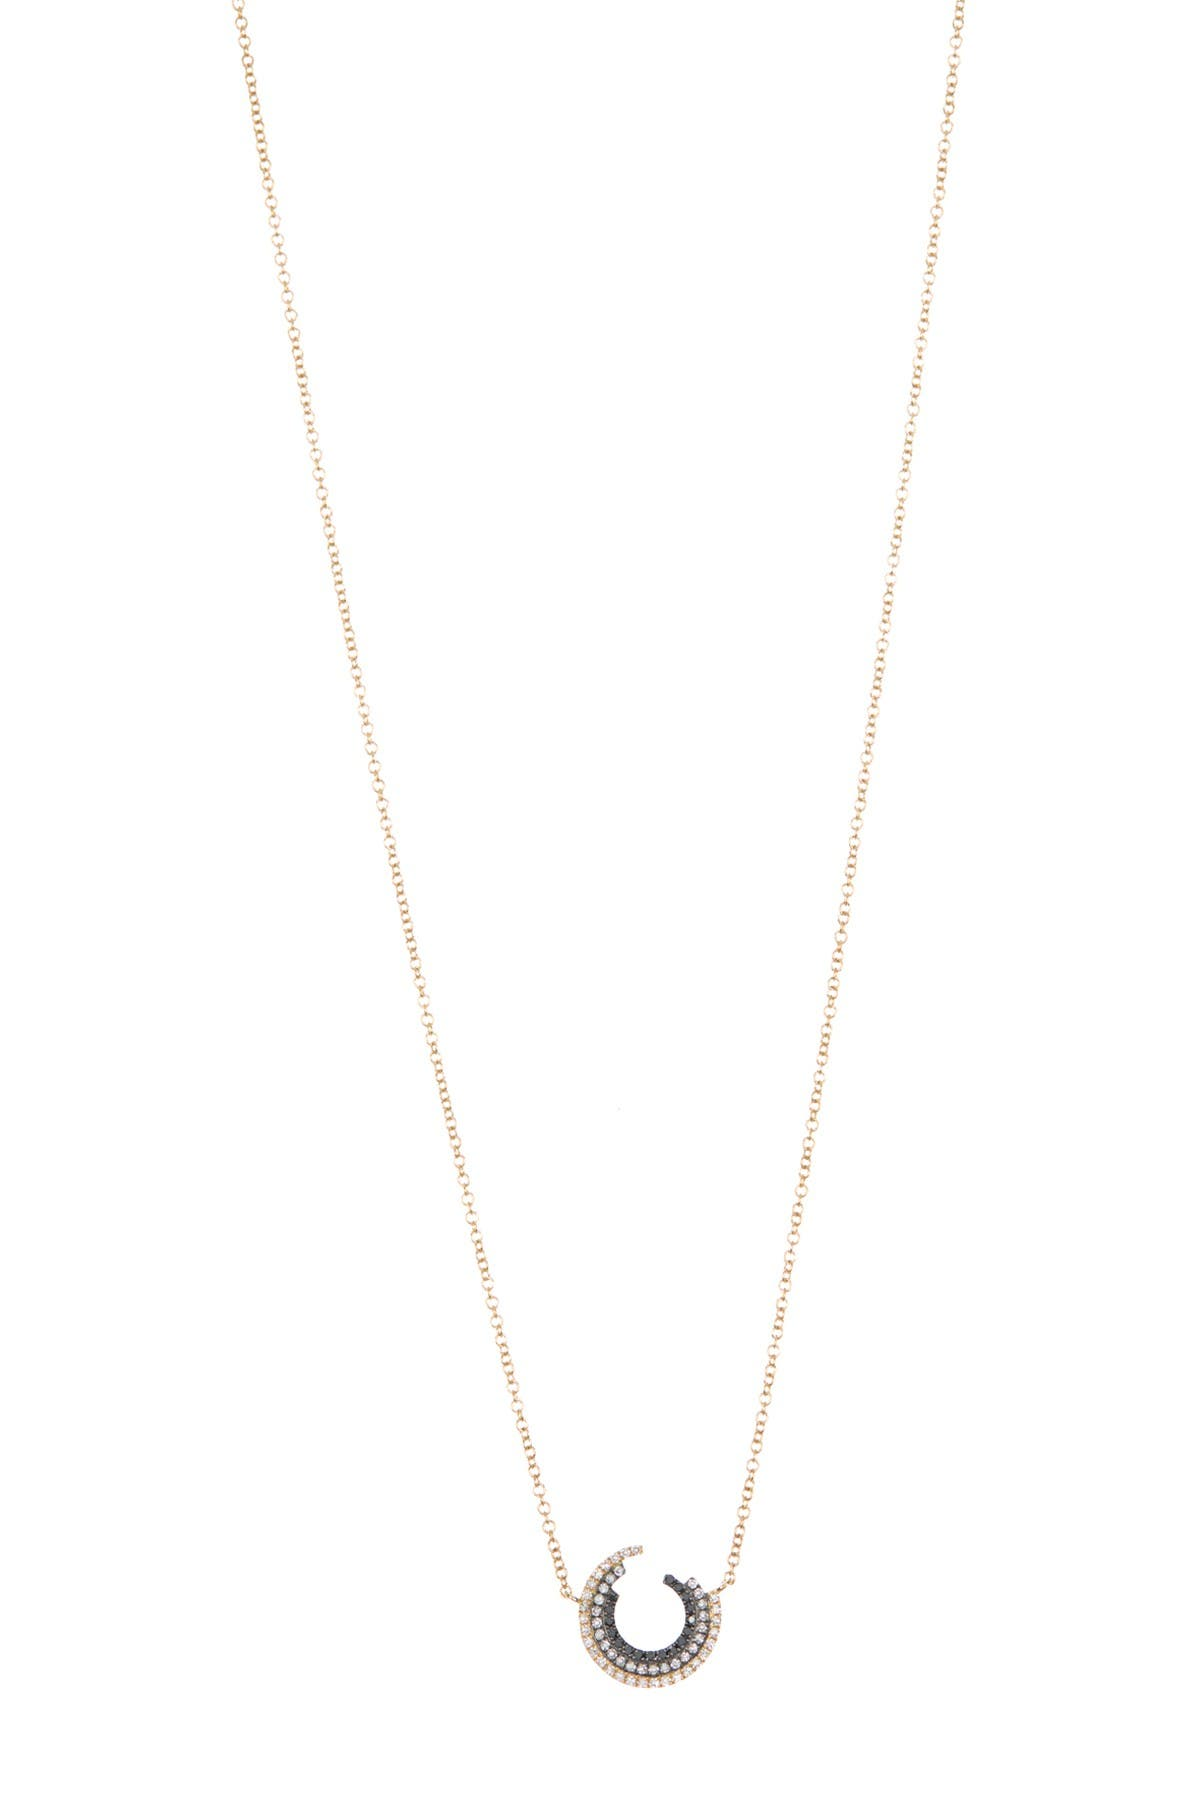 Image of EF Collection 14K Yellow Two-Tone Circle Diamond Pendant Necklace - 0.19 ctw